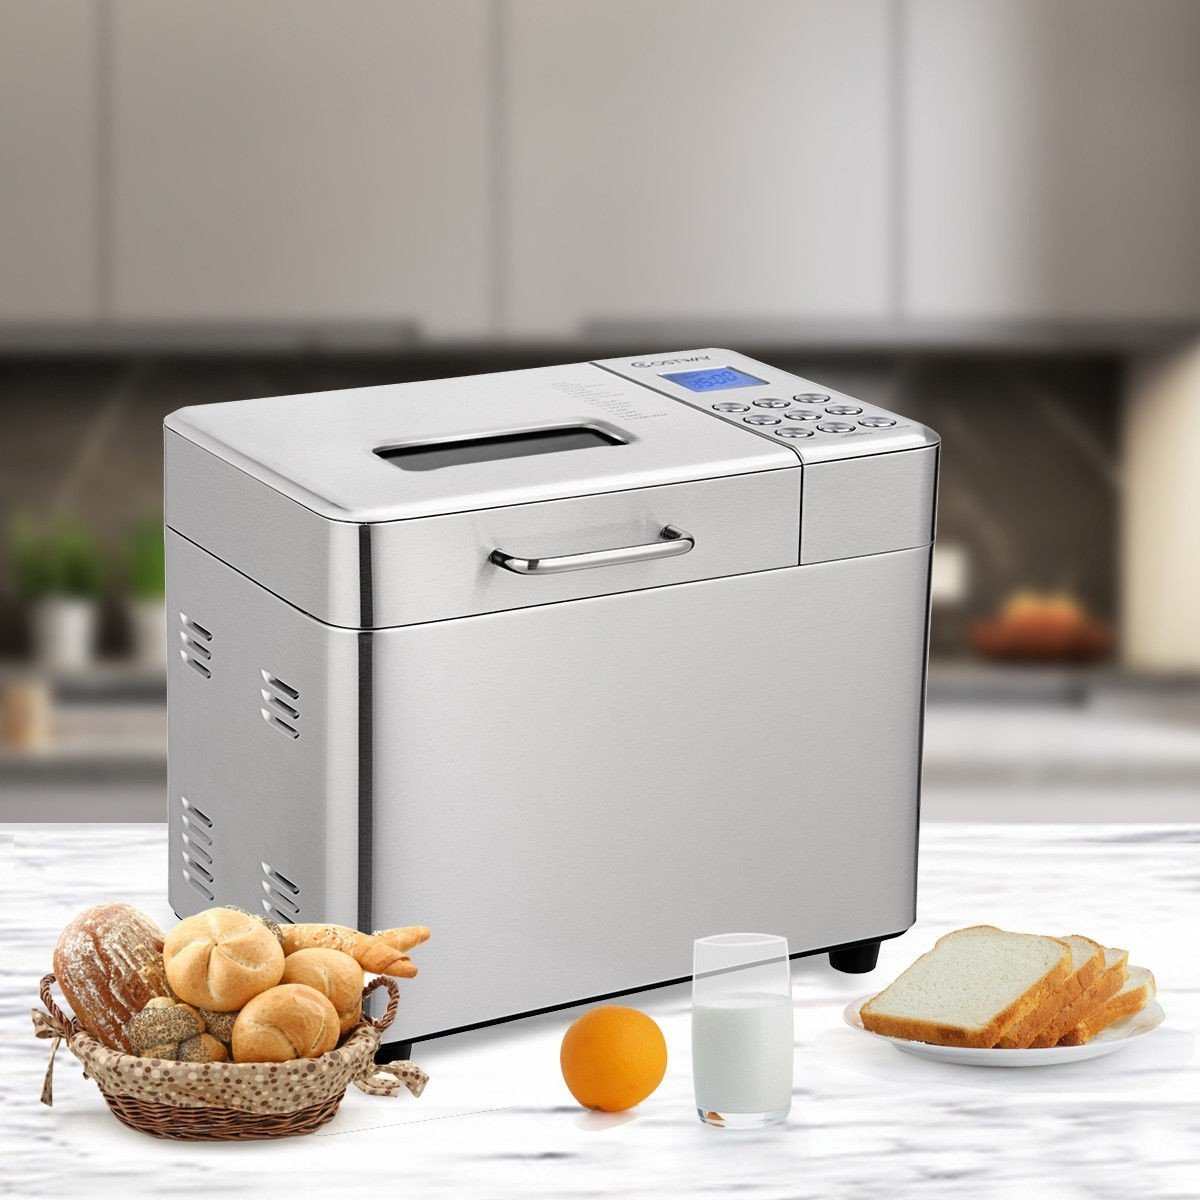 Home & Garden Automatic Stainless Steel Bread Maker 2Lb ...